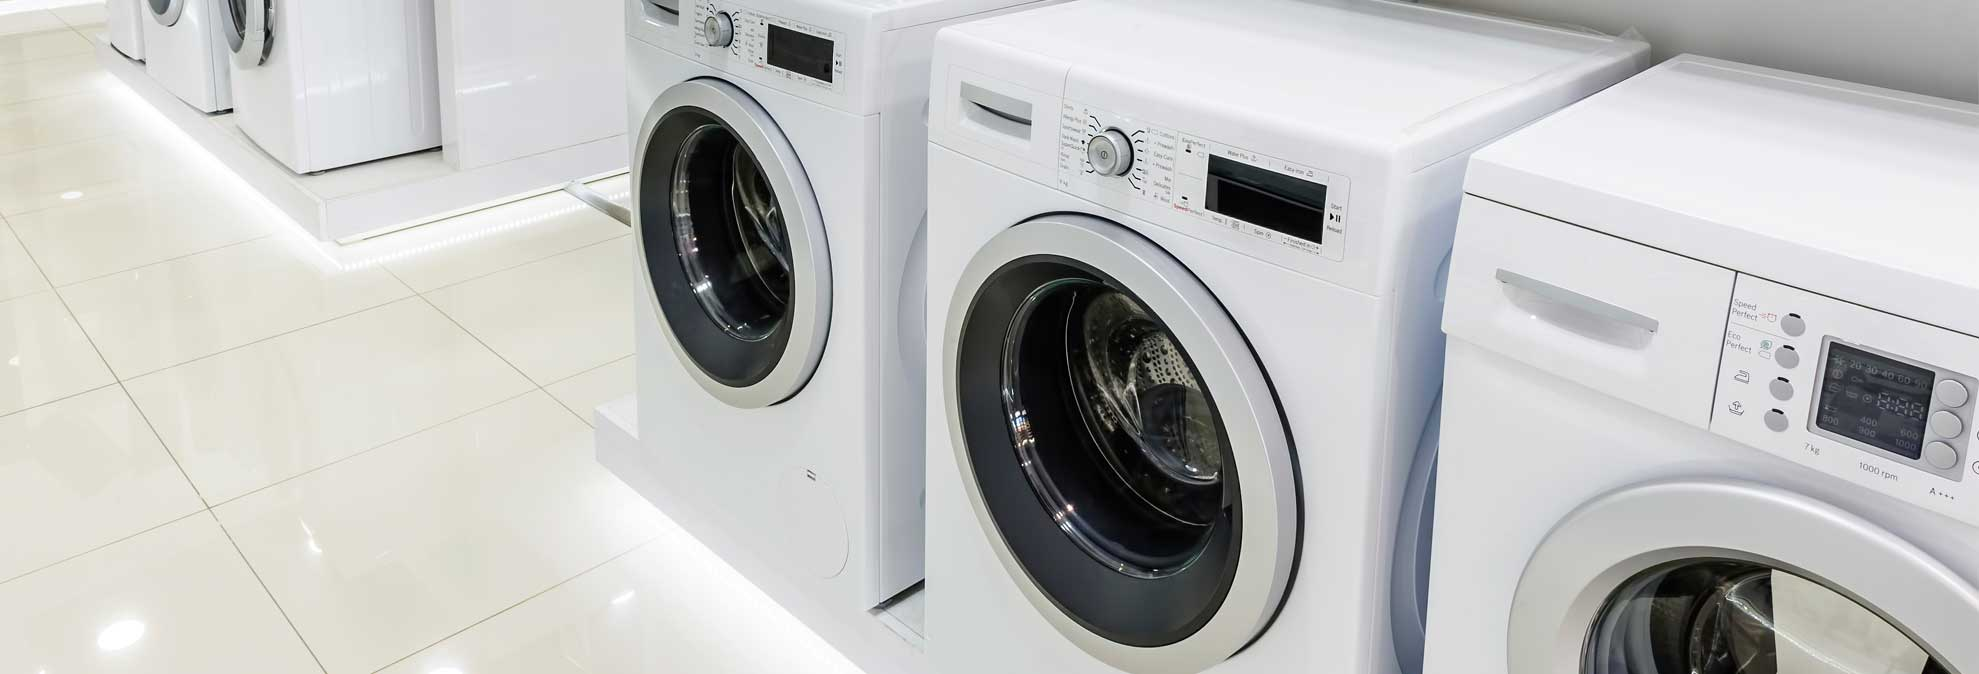 Uncategorized Consumer Reports Kitchen Appliances sears and jcpenney ramp up appliance sales consumer reports reports